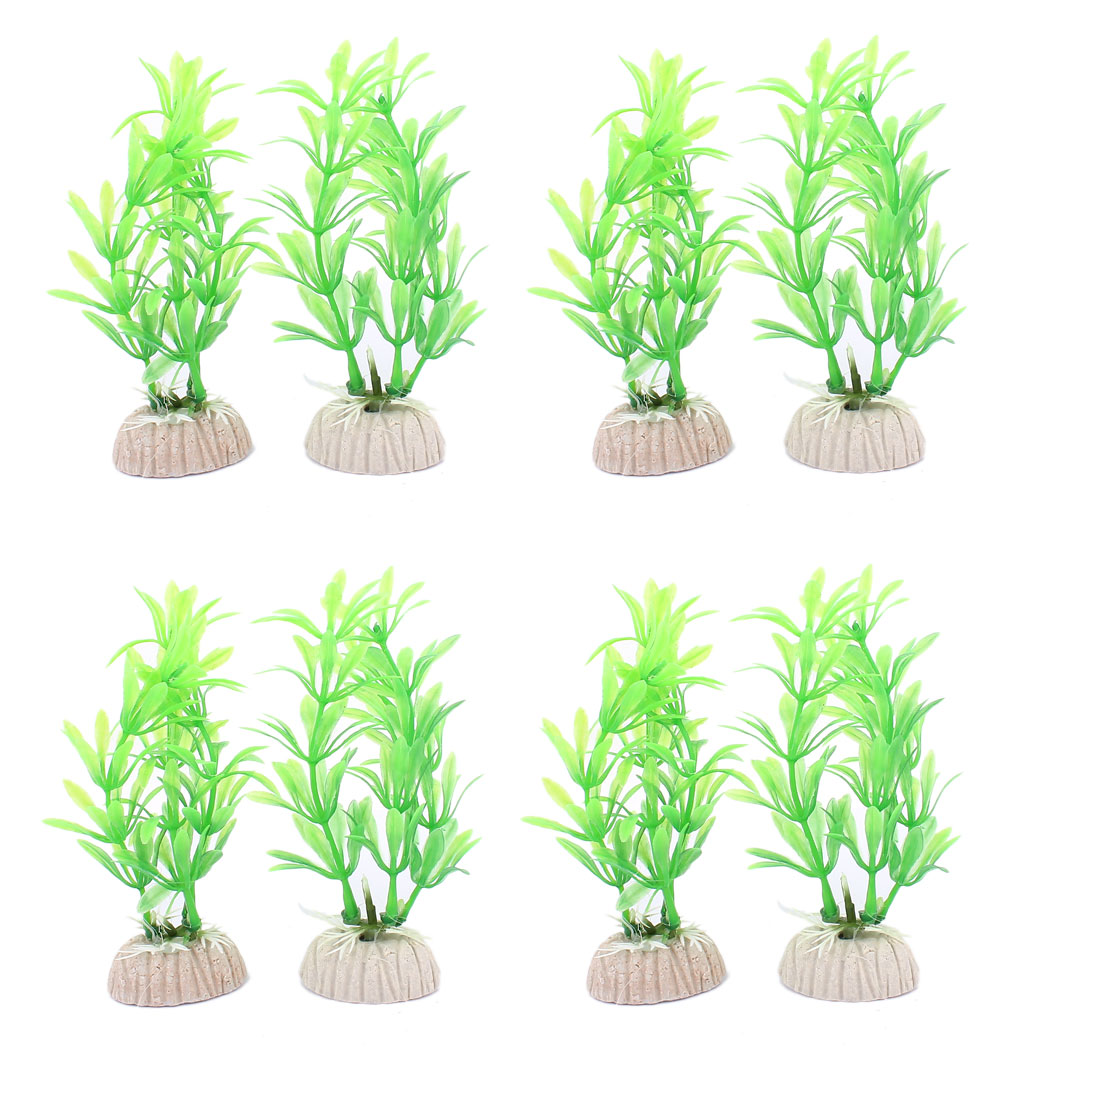 Plastic Underwater Aquatic Plant Fish Tank Aquarium Decoration 8PCS